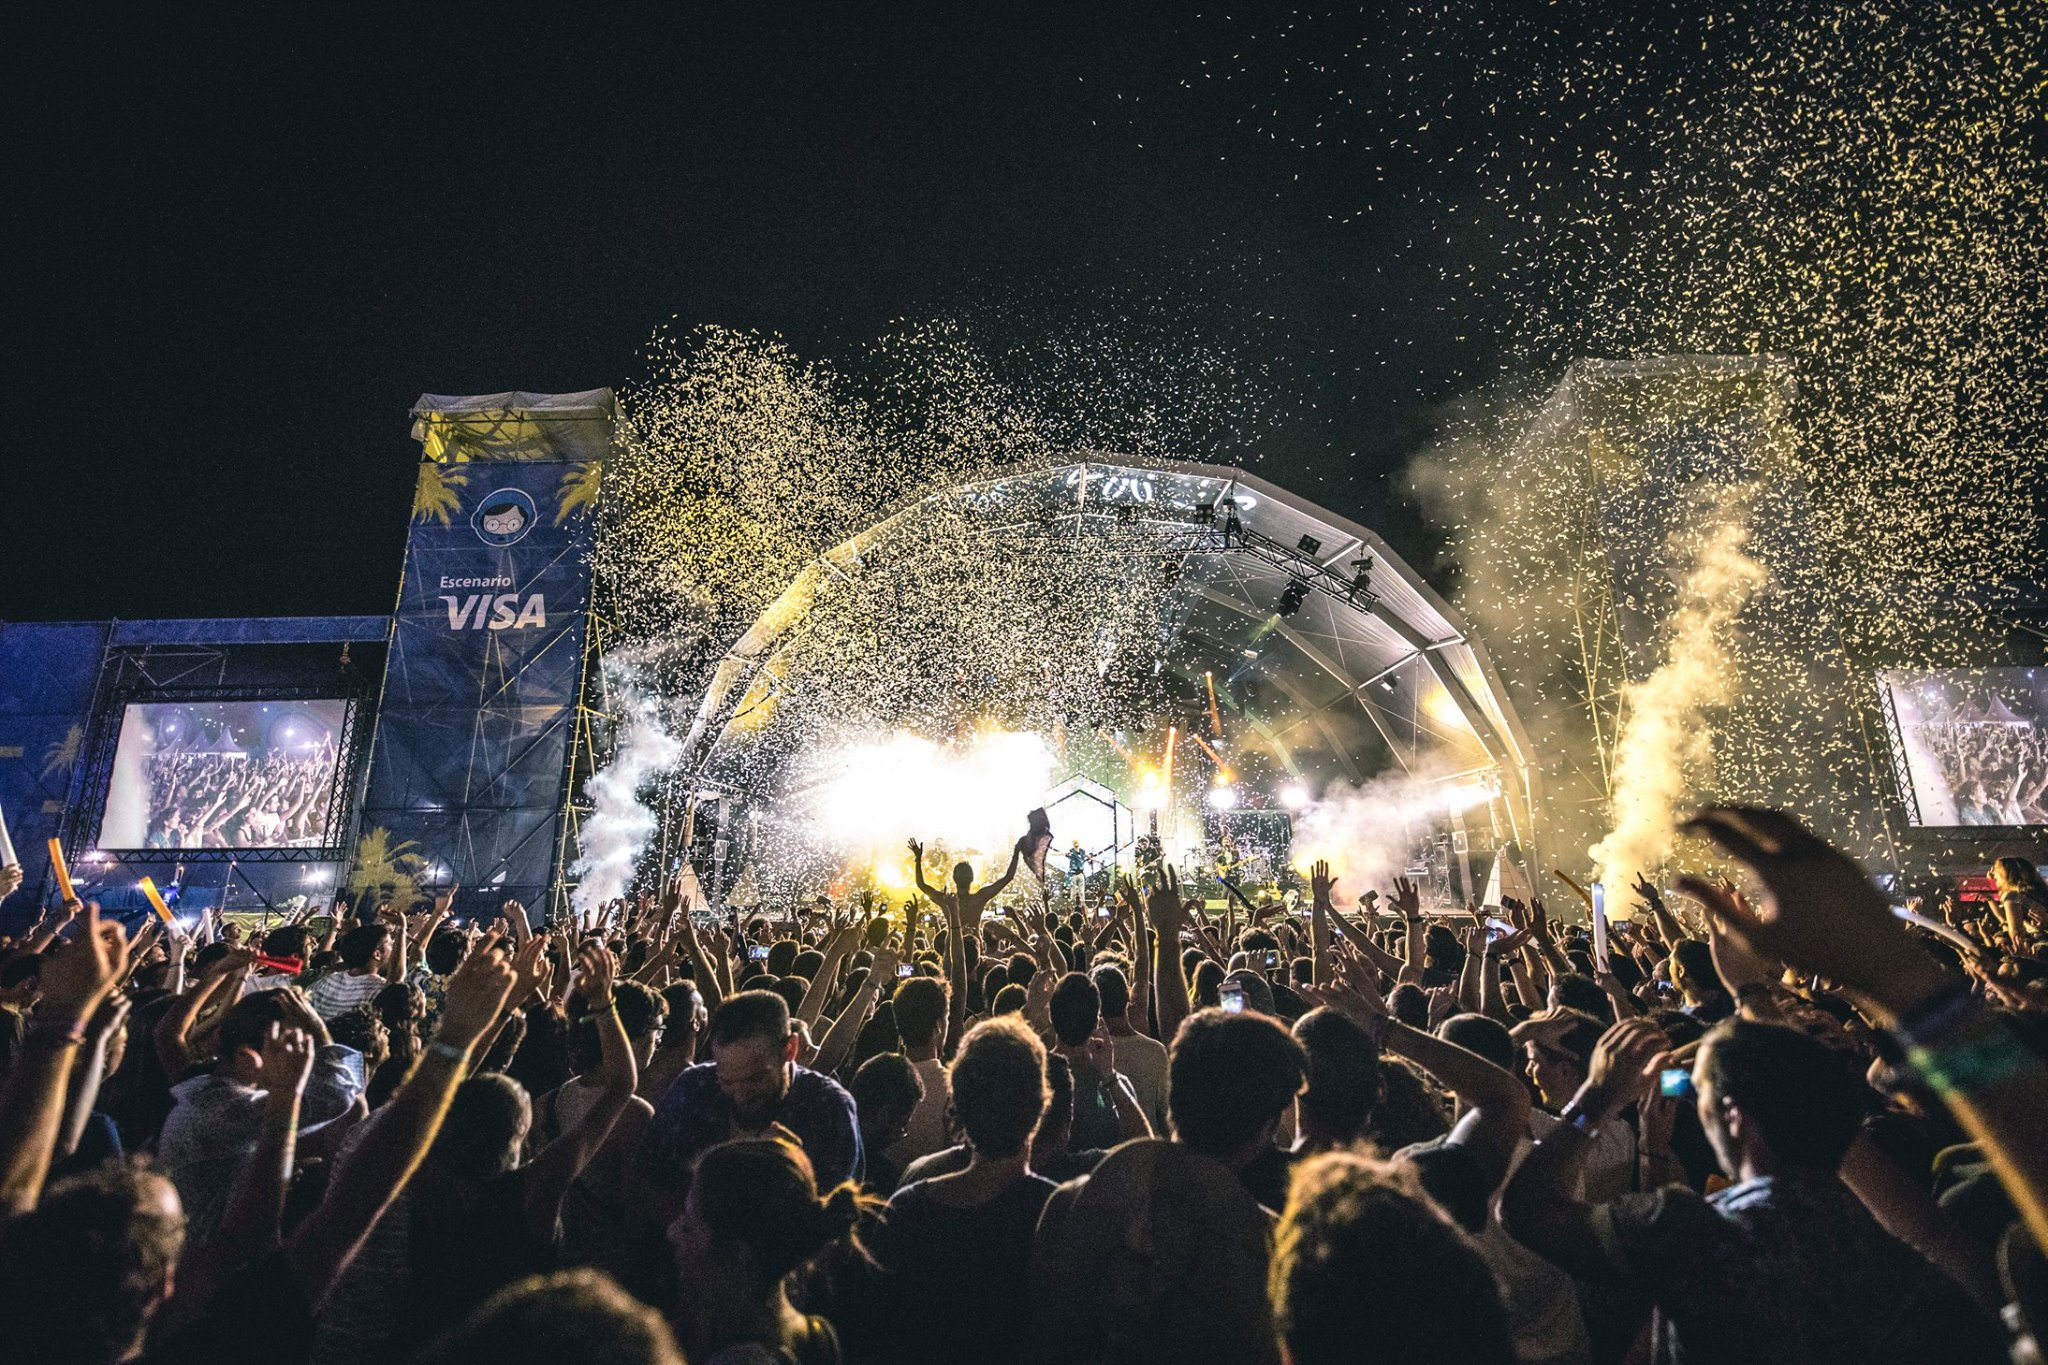 Benicassim 2017 Photos